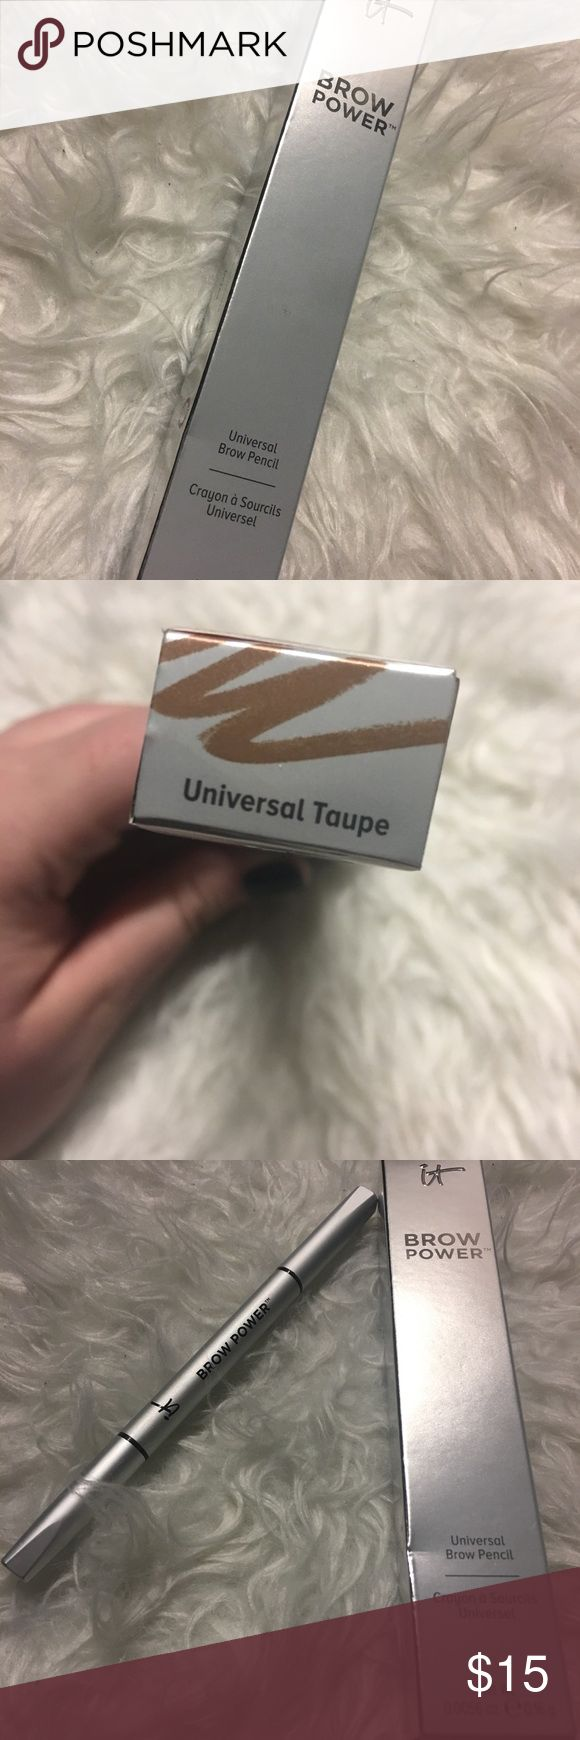 IT Cosmetics Universal Brow Pencil Brand new, never used! Took a screenshot from their website to show the color of the pencil. I personally love this product! IT Cosmetics Makeup Eyebrow Filler